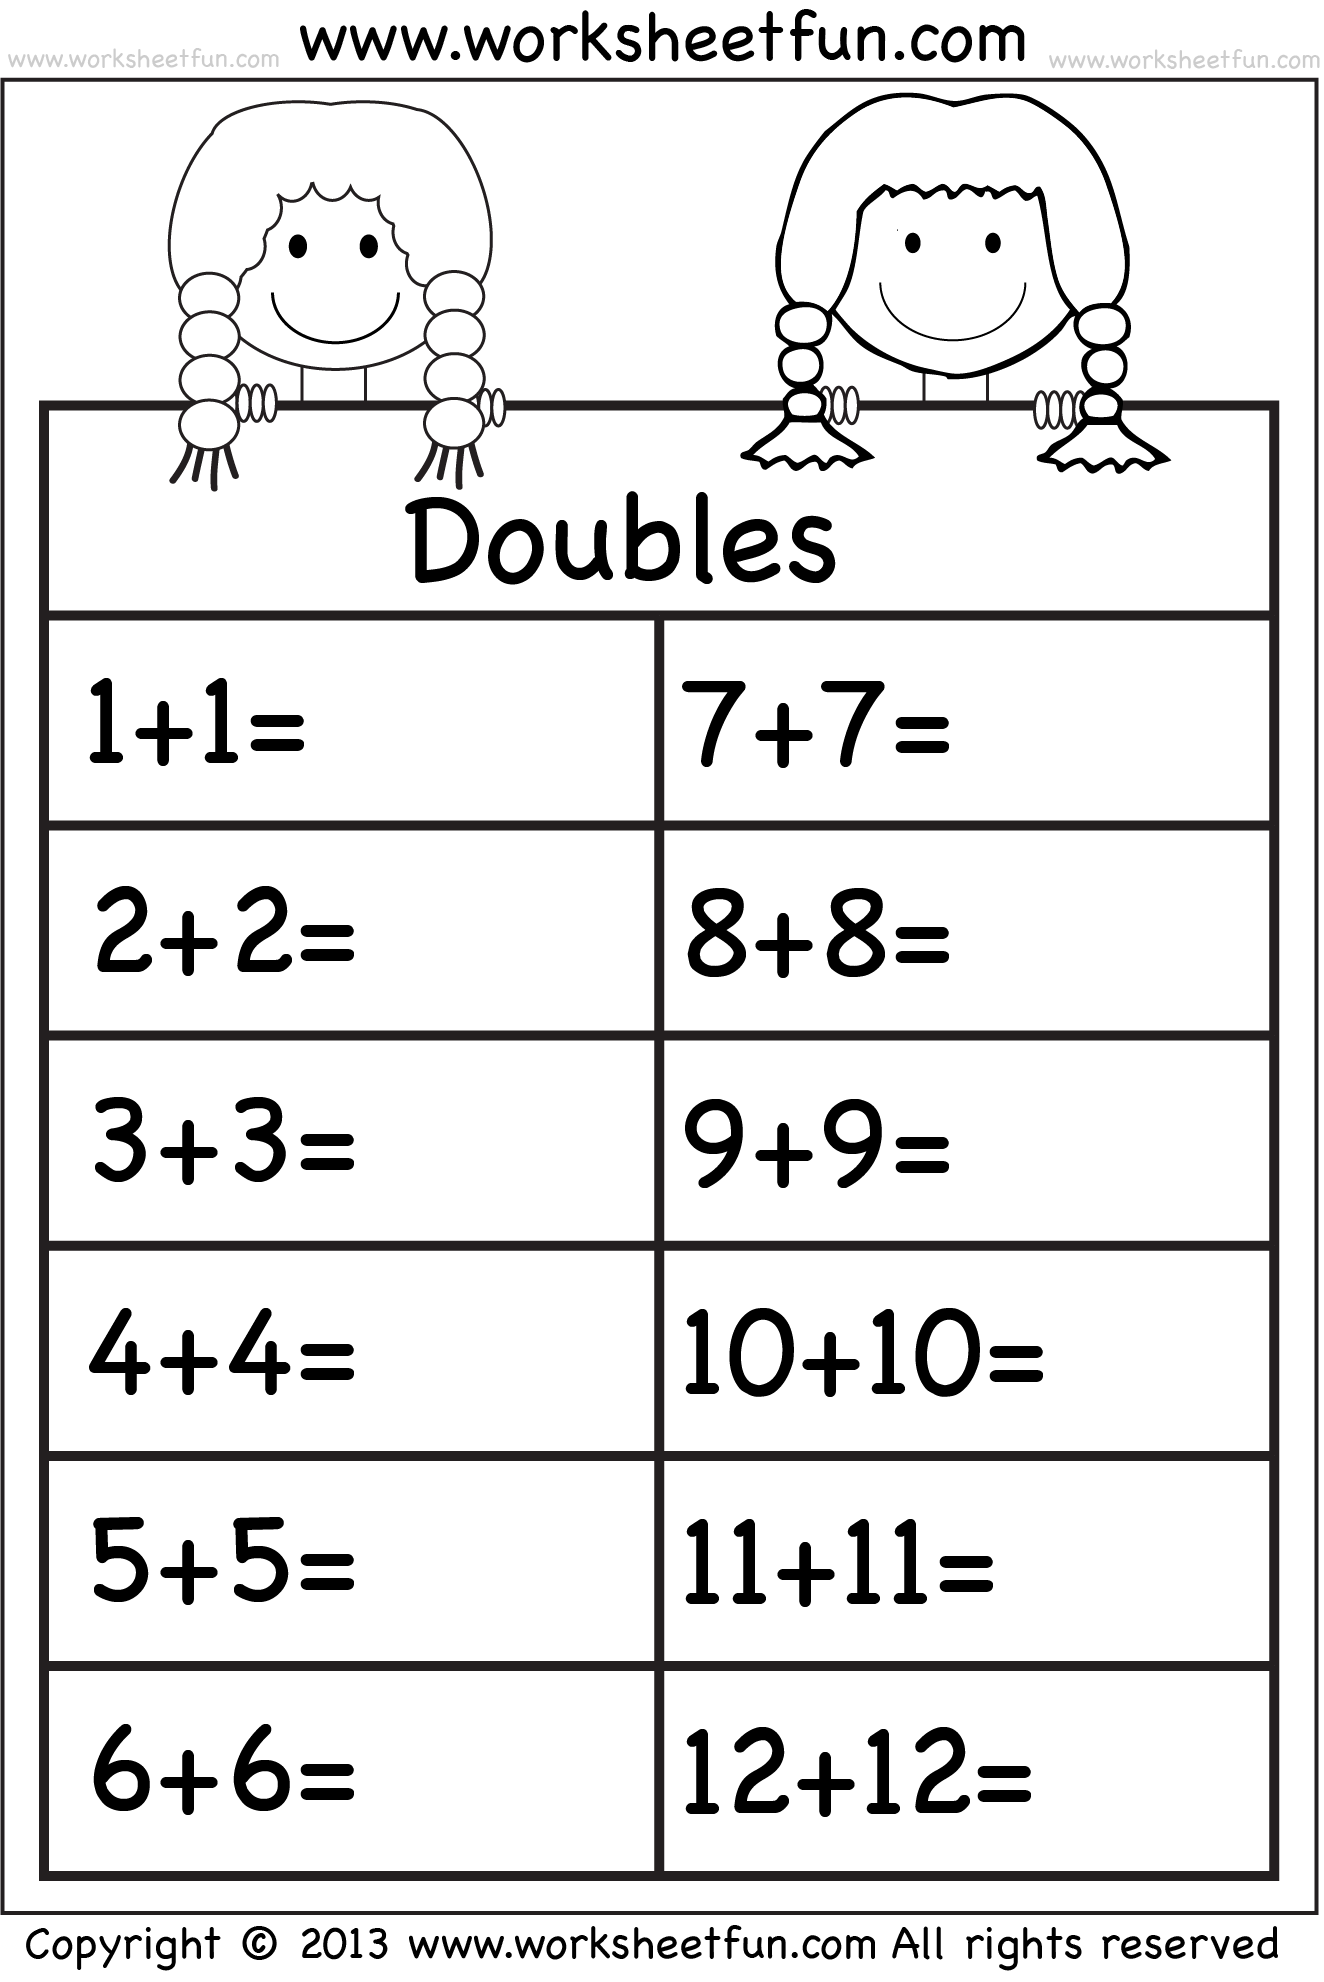 Addition Doubles  1 Worksheet  Free Printable Worksheets  Worksheetfun